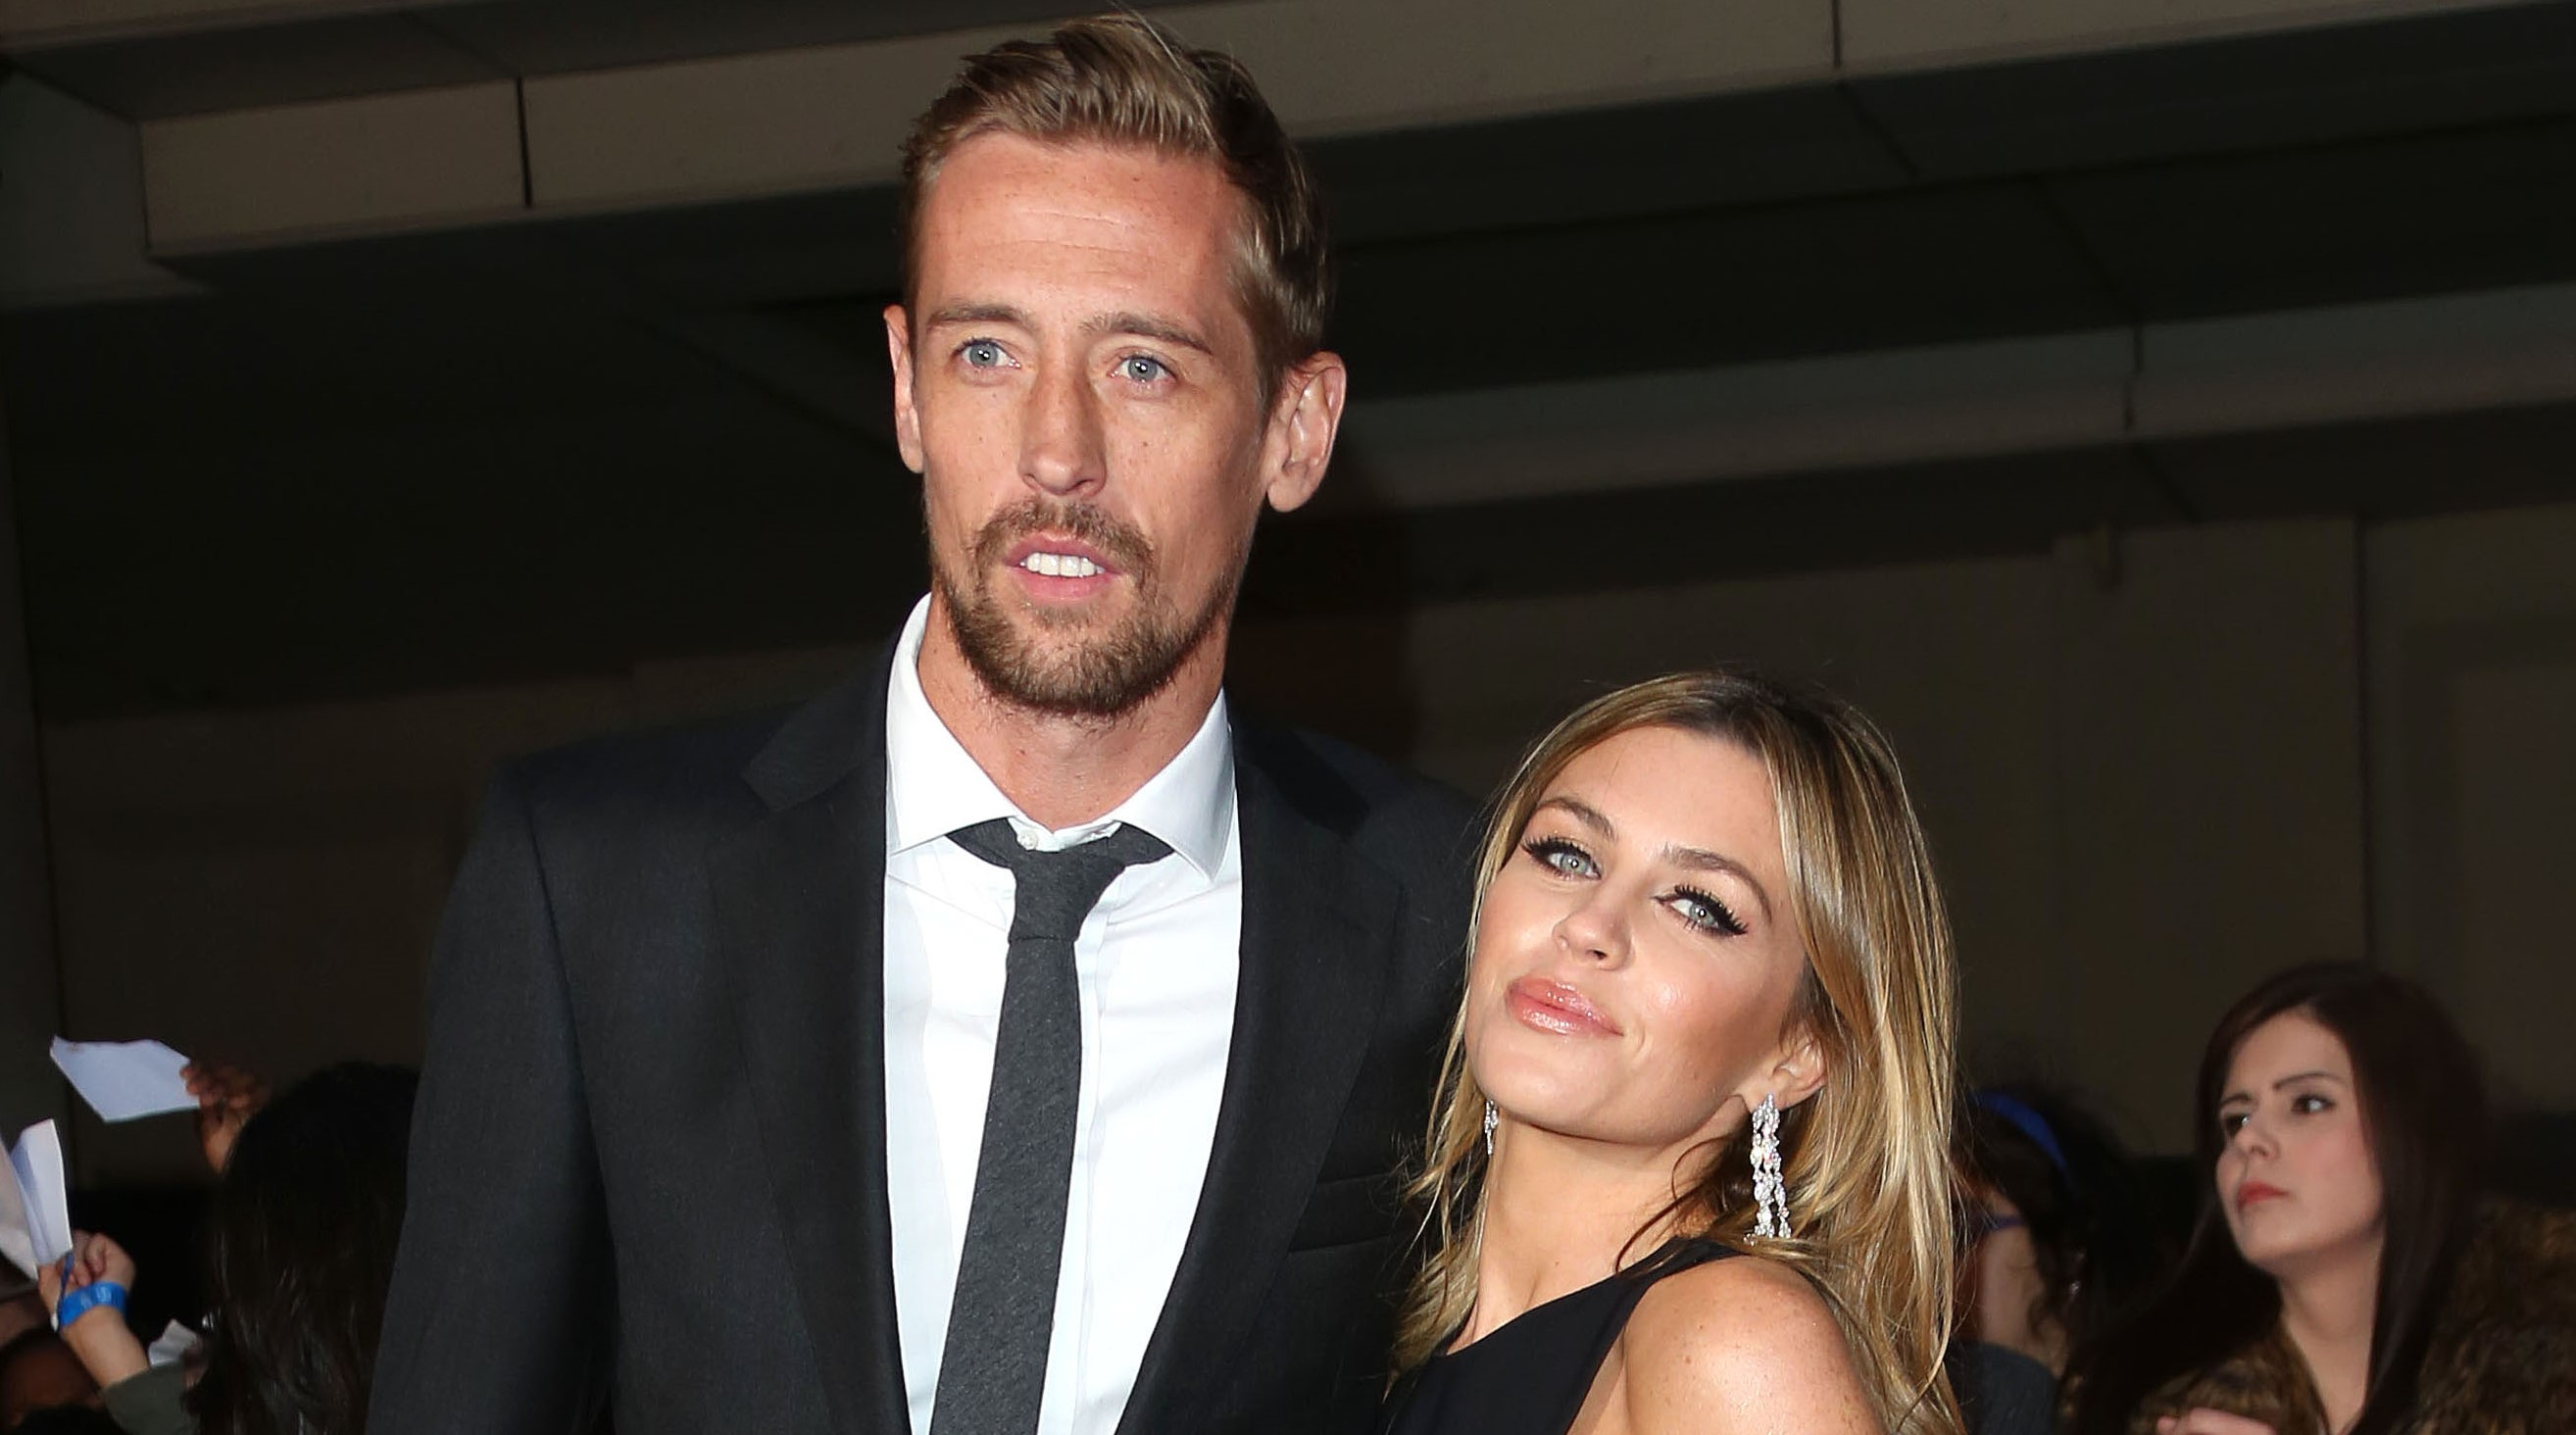 Abbey Clancy shares emotional message as husband Peter Crouch